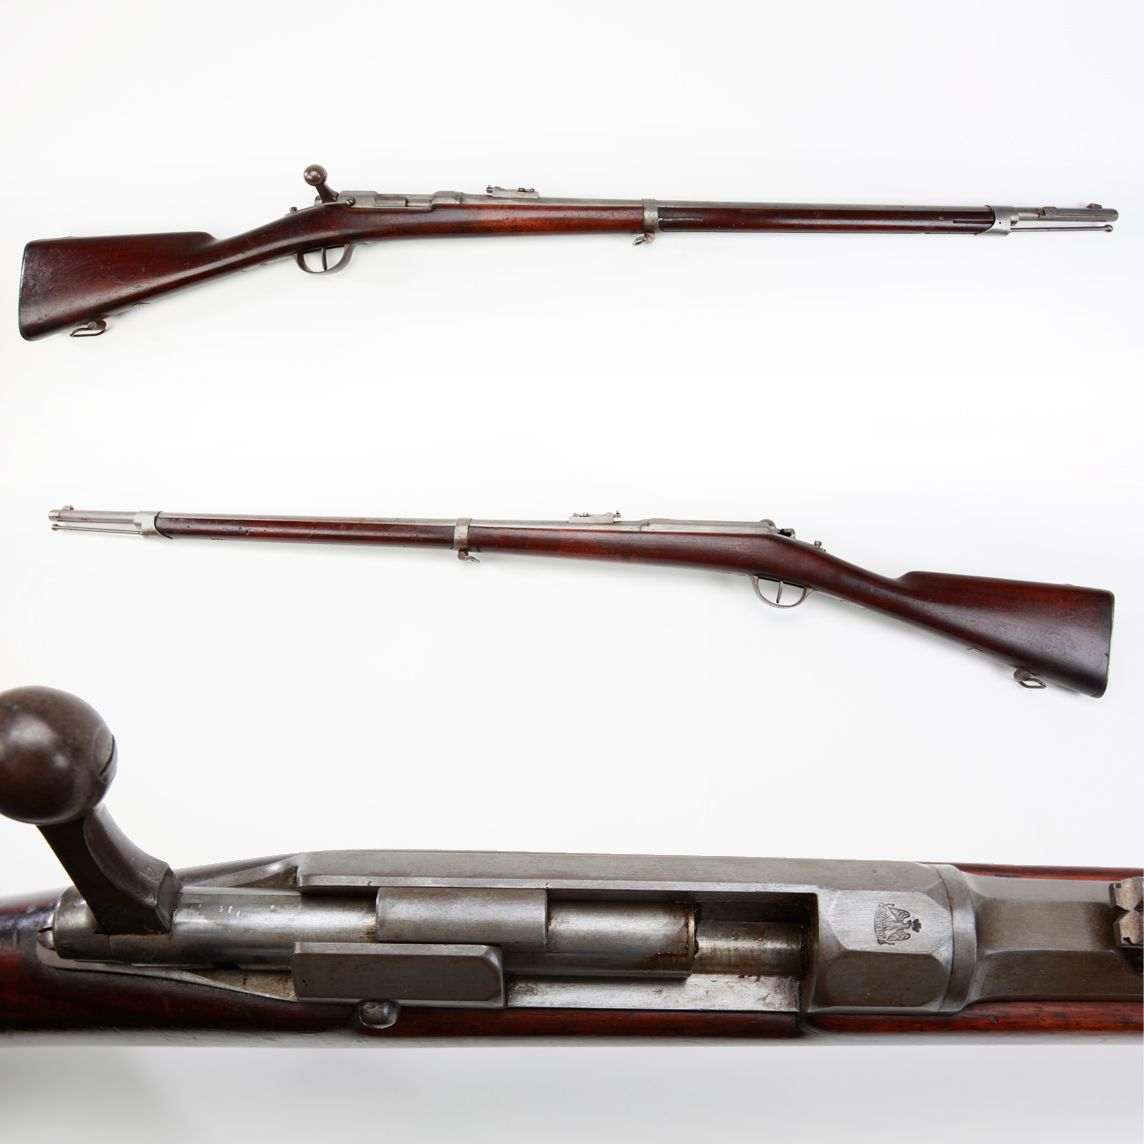 Mauser-Modified Chassepot Model 1866 - This French bolt-action rifle